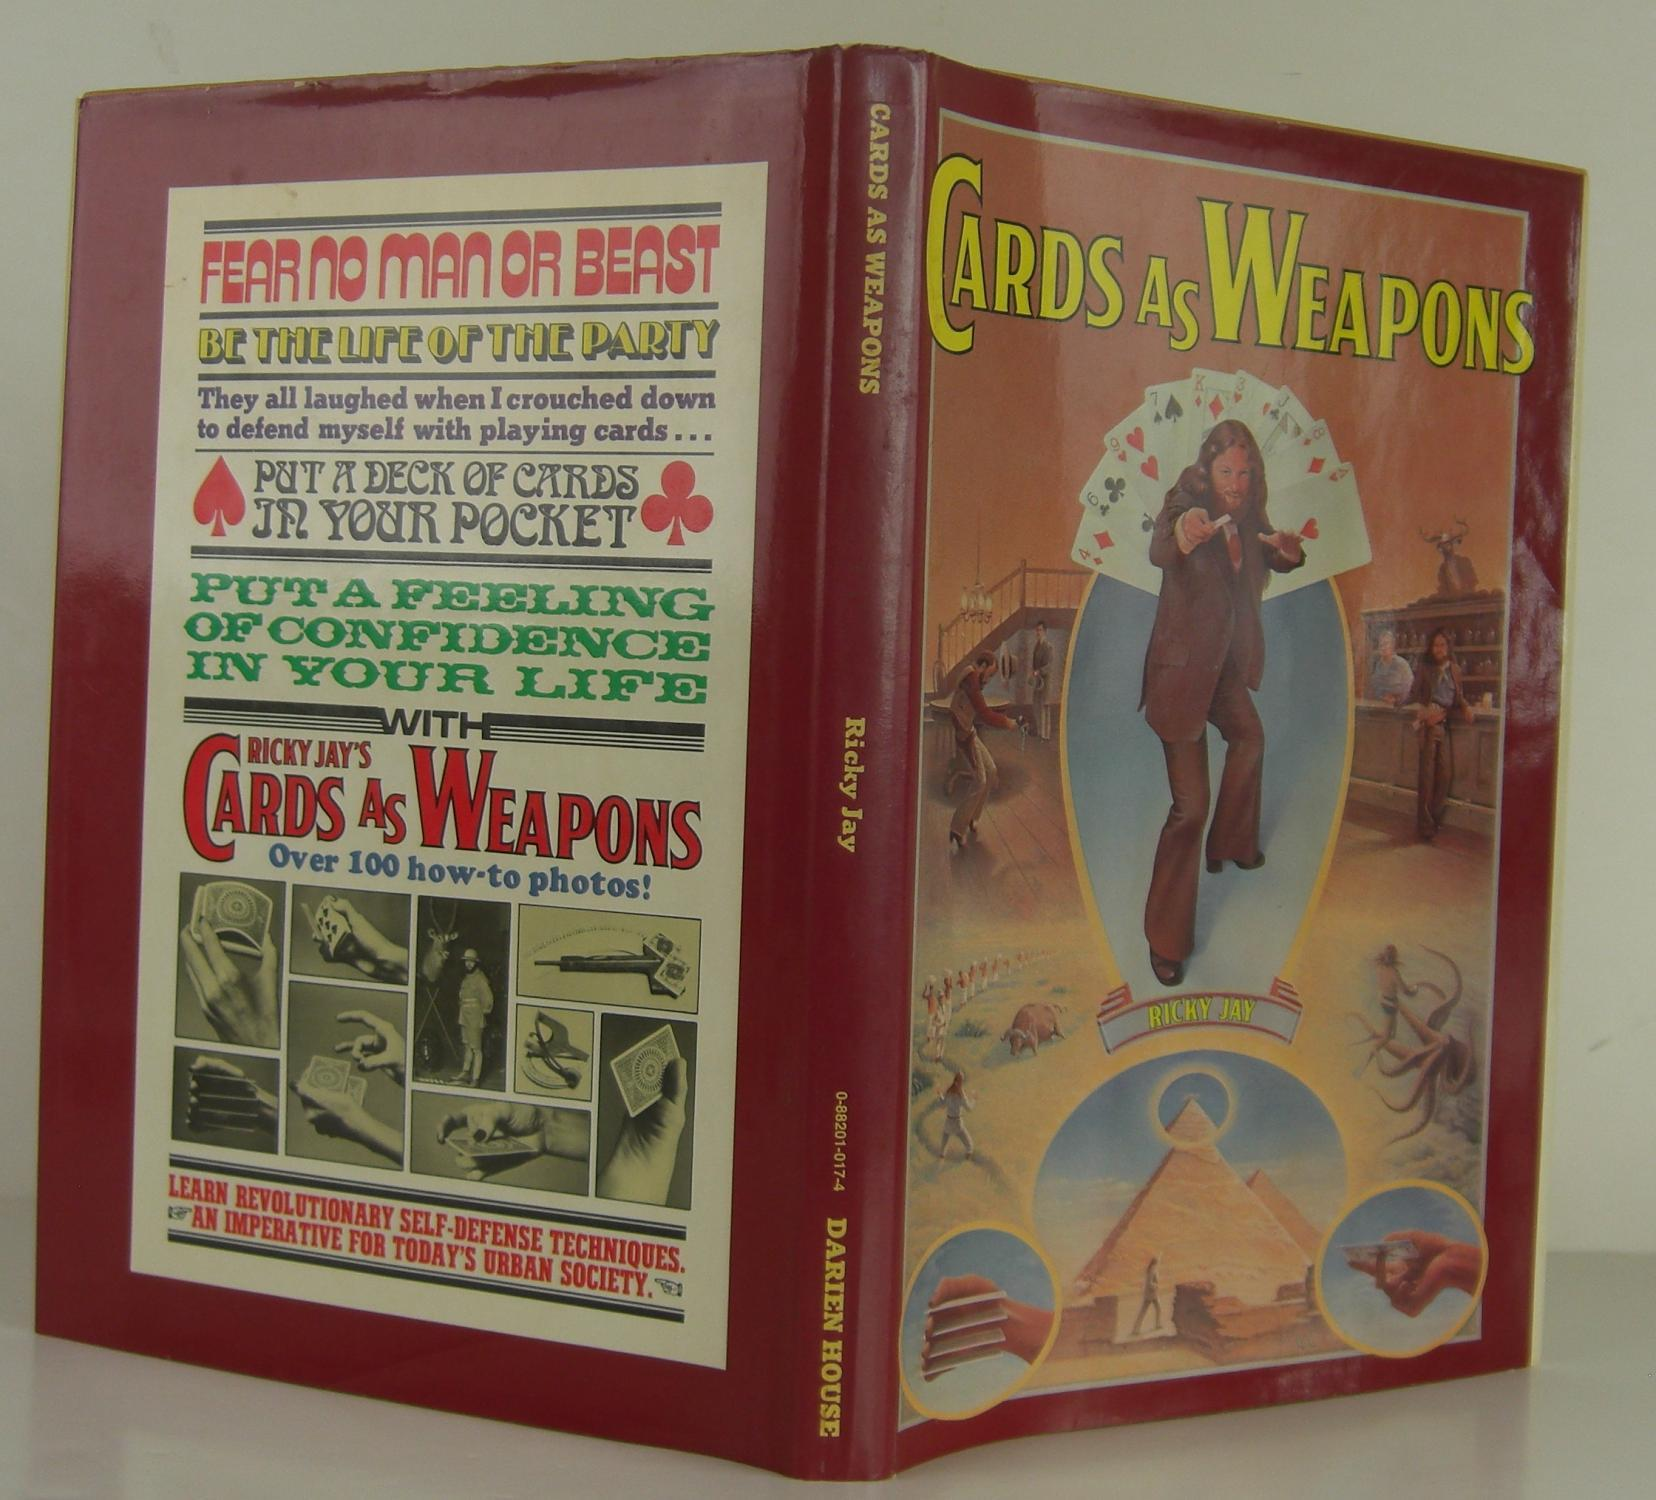 Cards as Weapons Jay, Ricky Fine Hardcover